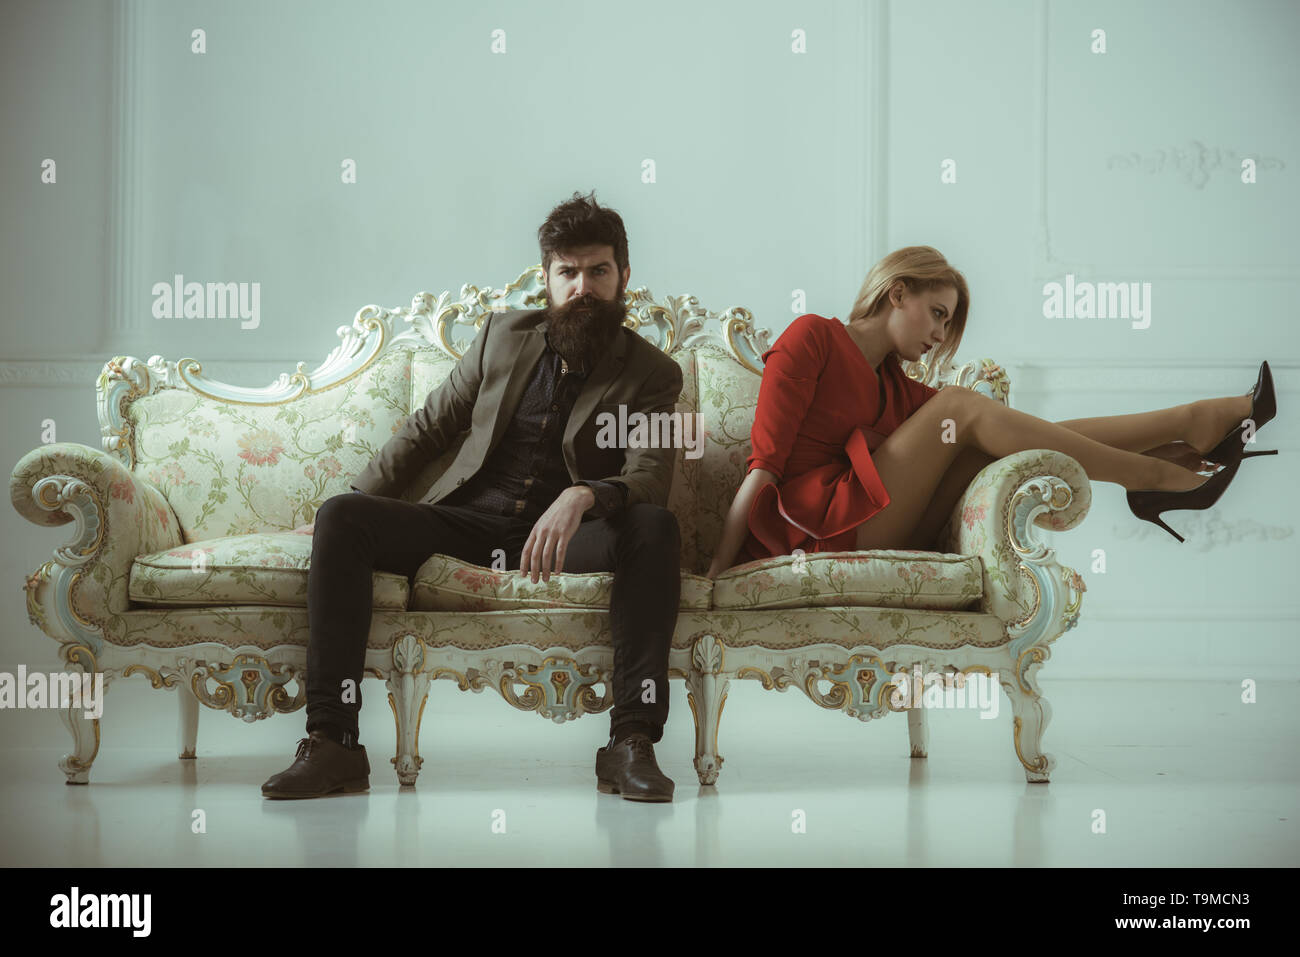 relationship. relationship of man and woman sit alone on one sofa. bad relatioship of cfamily couple. couple relationship breakdown. - Stock Image